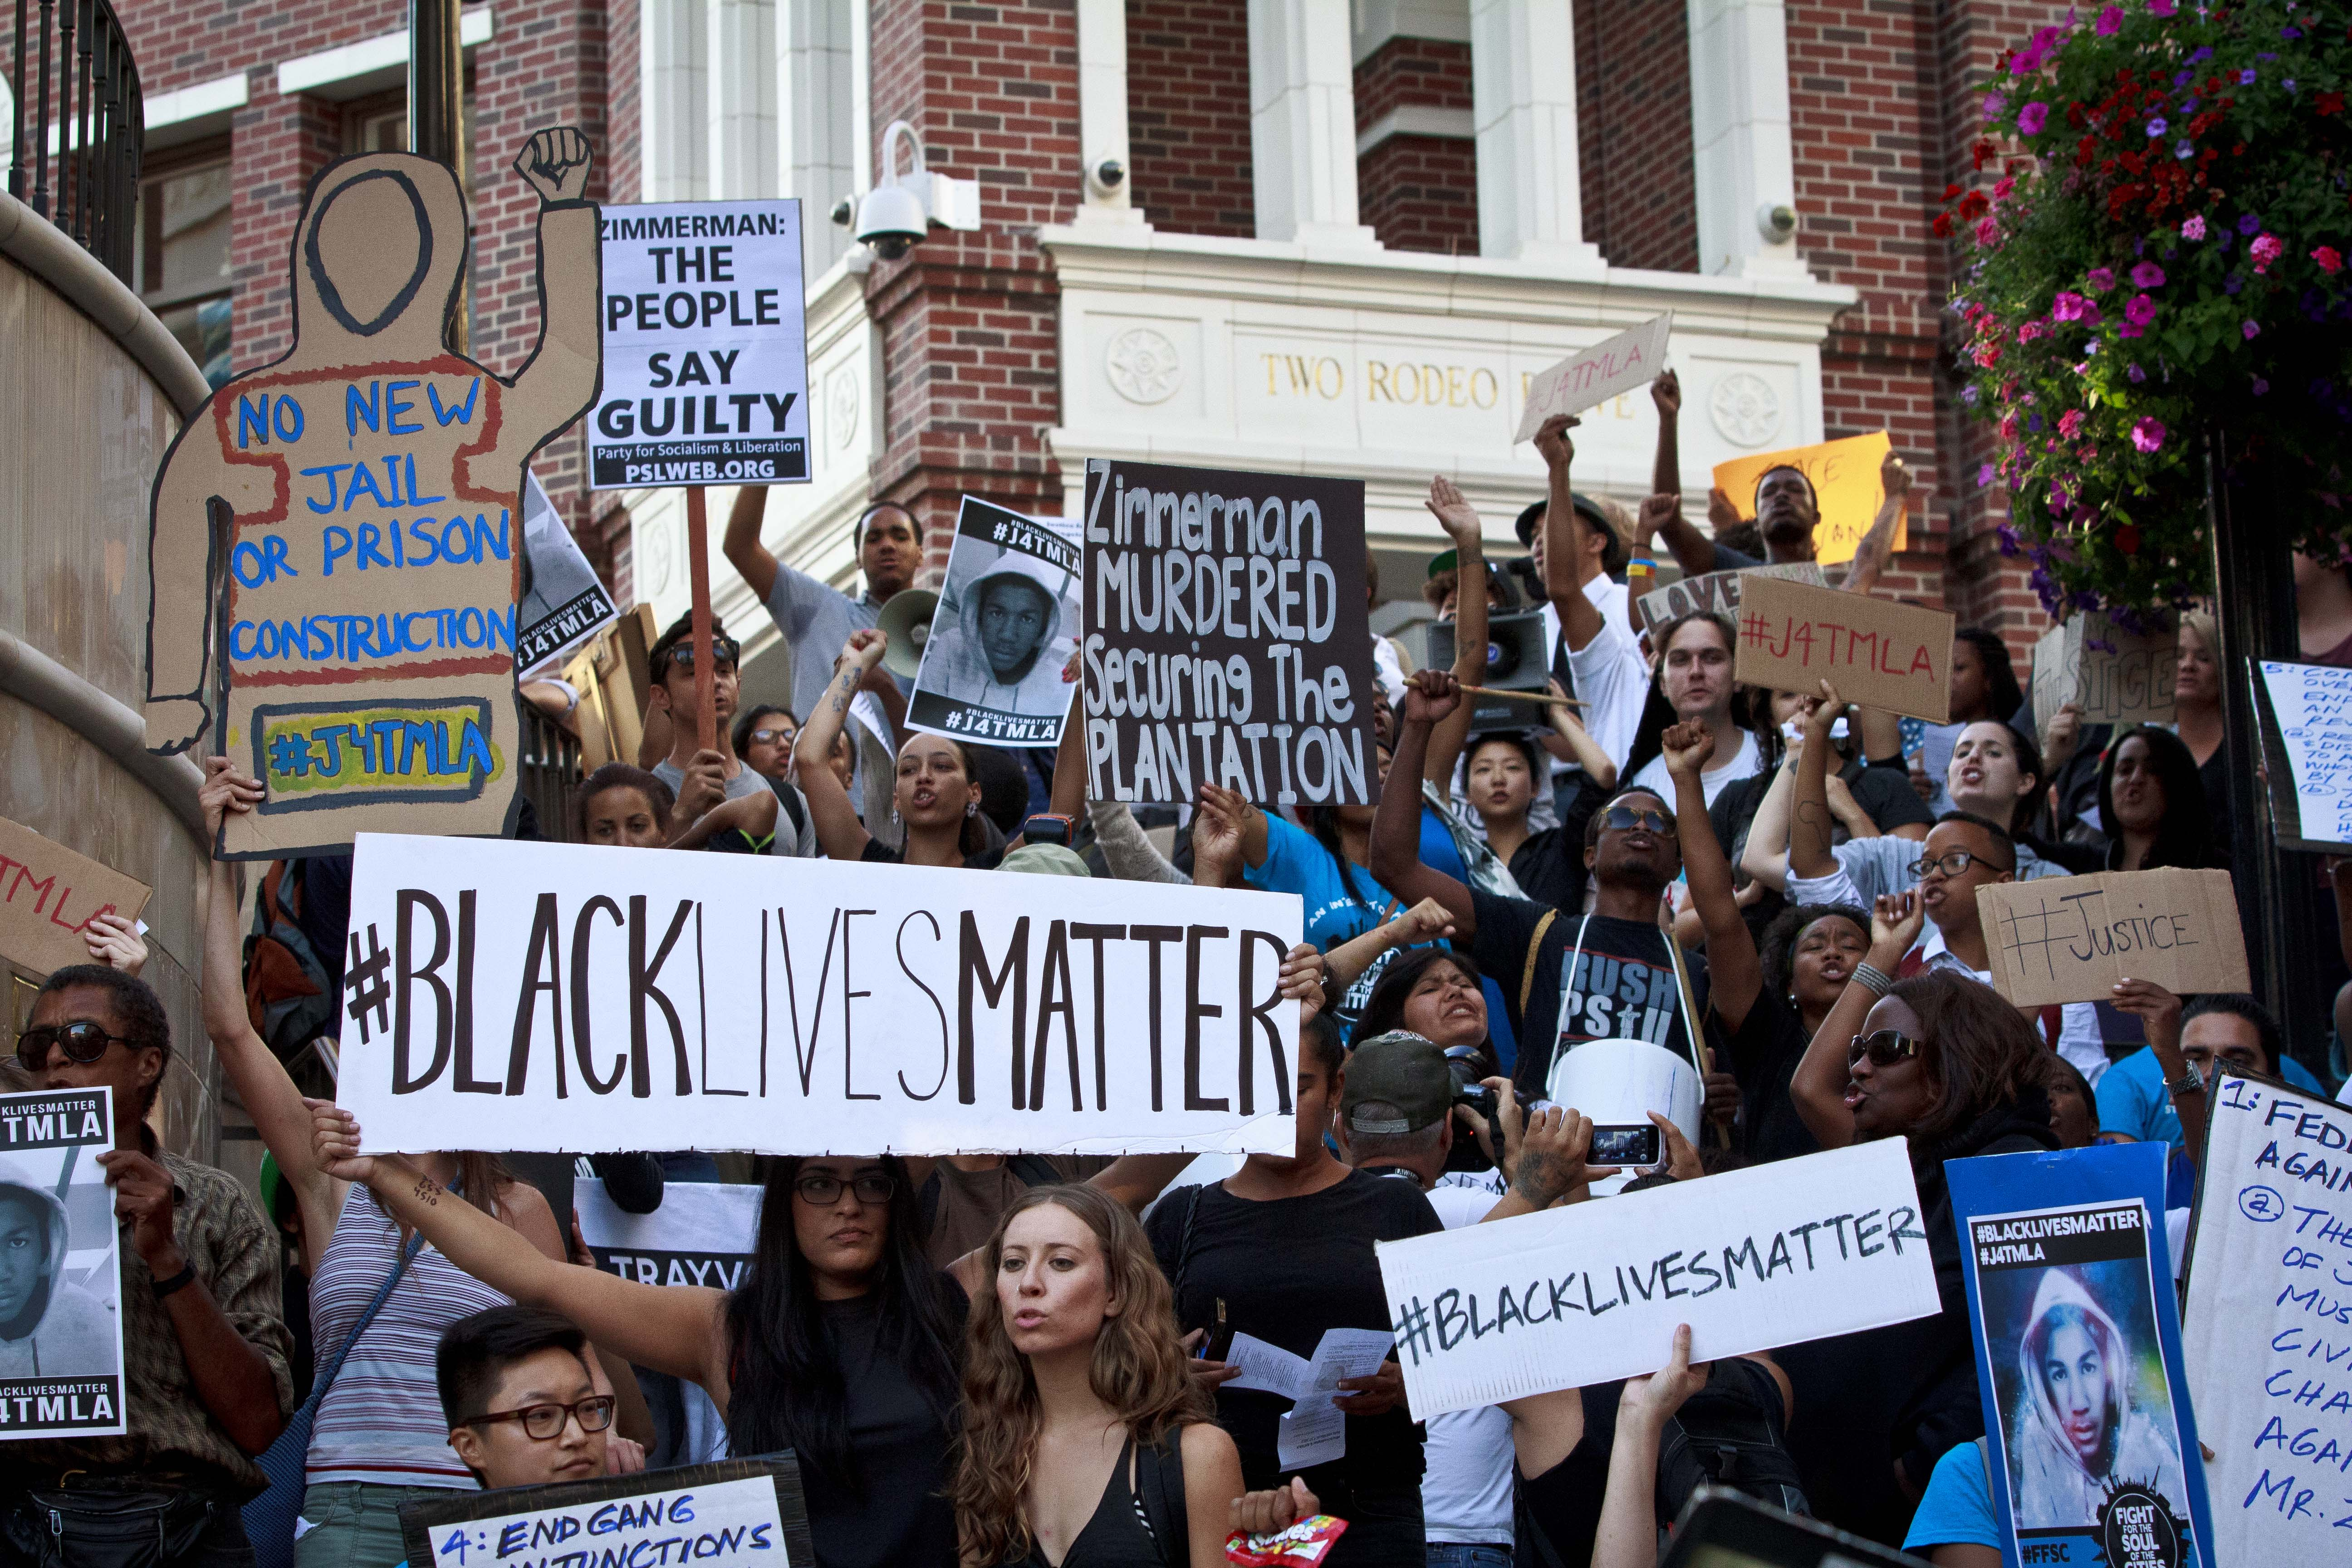 Black Lives Matter -- But the Movement Is Flawed | Jewish ...